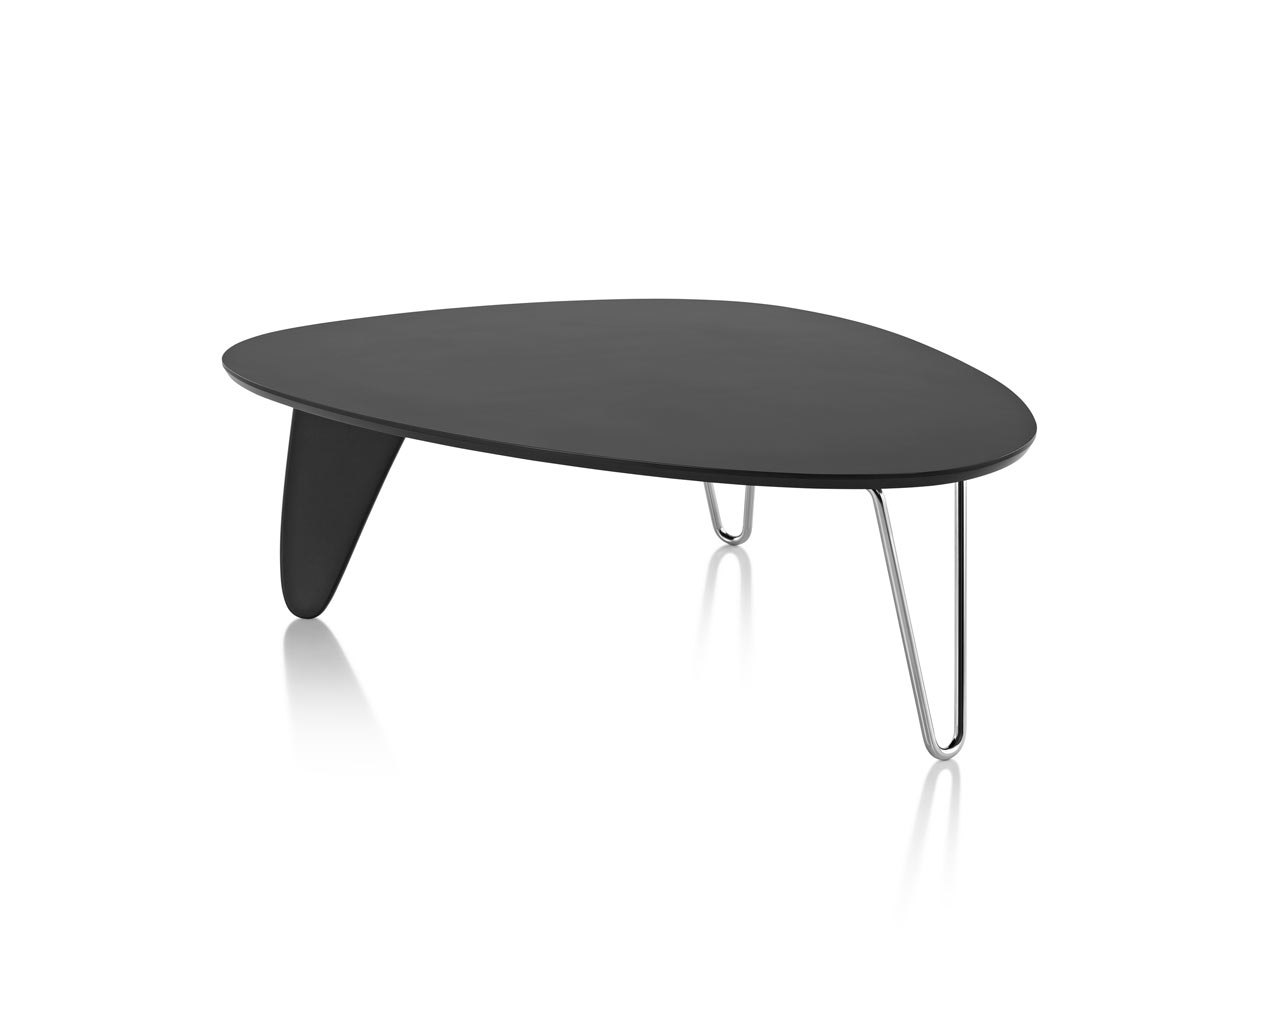 herman miller re introduces rudder table by noguchi. Black Bedroom Furniture Sets. Home Design Ideas